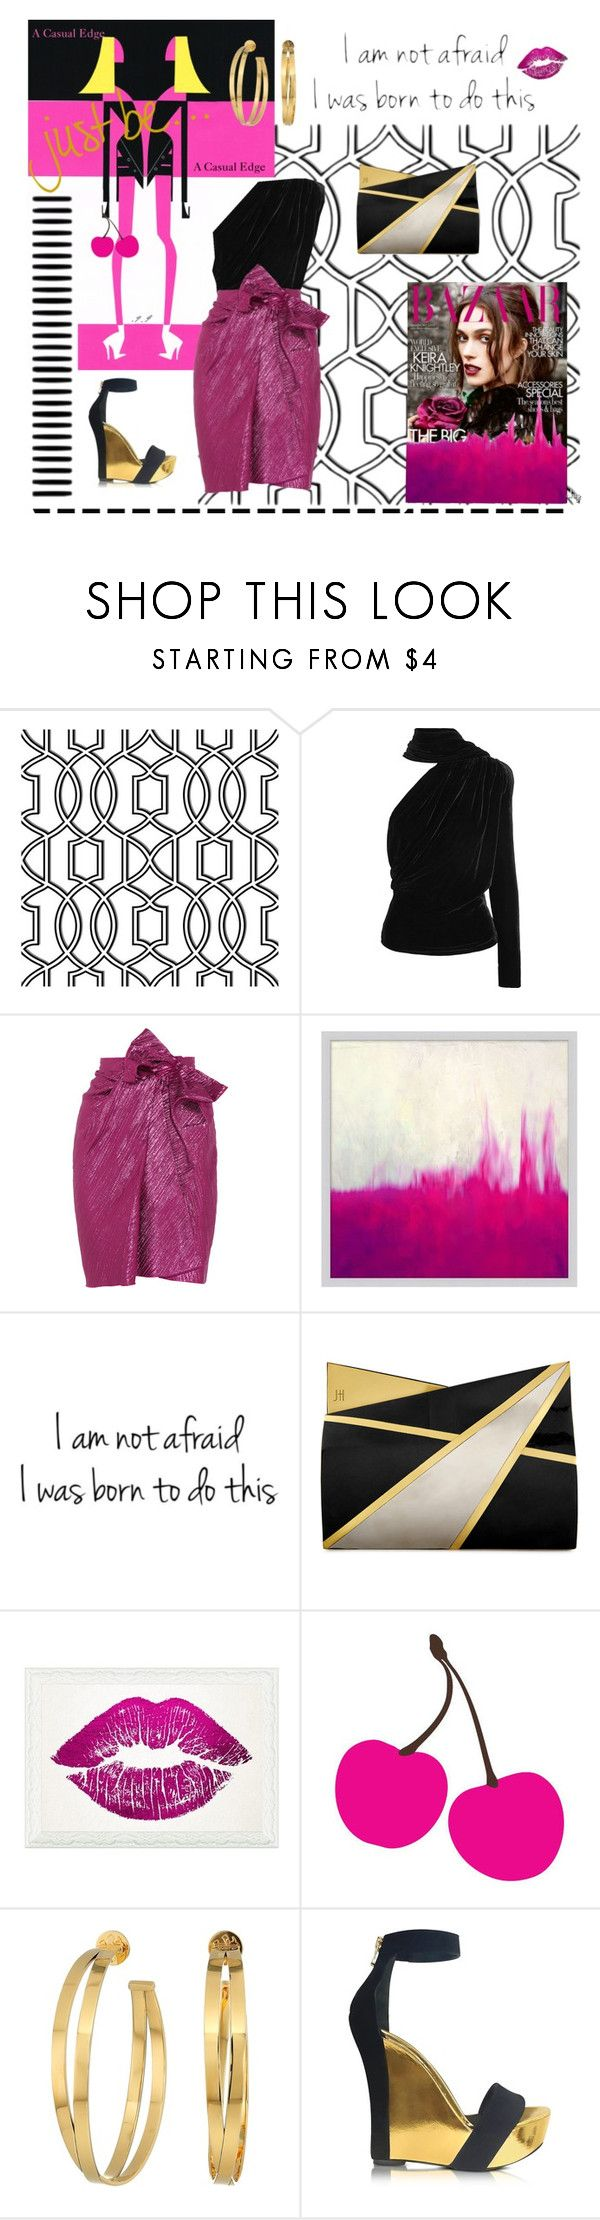 """Untitled #319"" by astylemave on Polyvore featuring Wall Pops!, Gareth Pugh, Lanvin, Pottery Barn, Jill Haber, Oliver Gal Artist Co., Avalisa, Tory Burch, Balmain and contestentry"